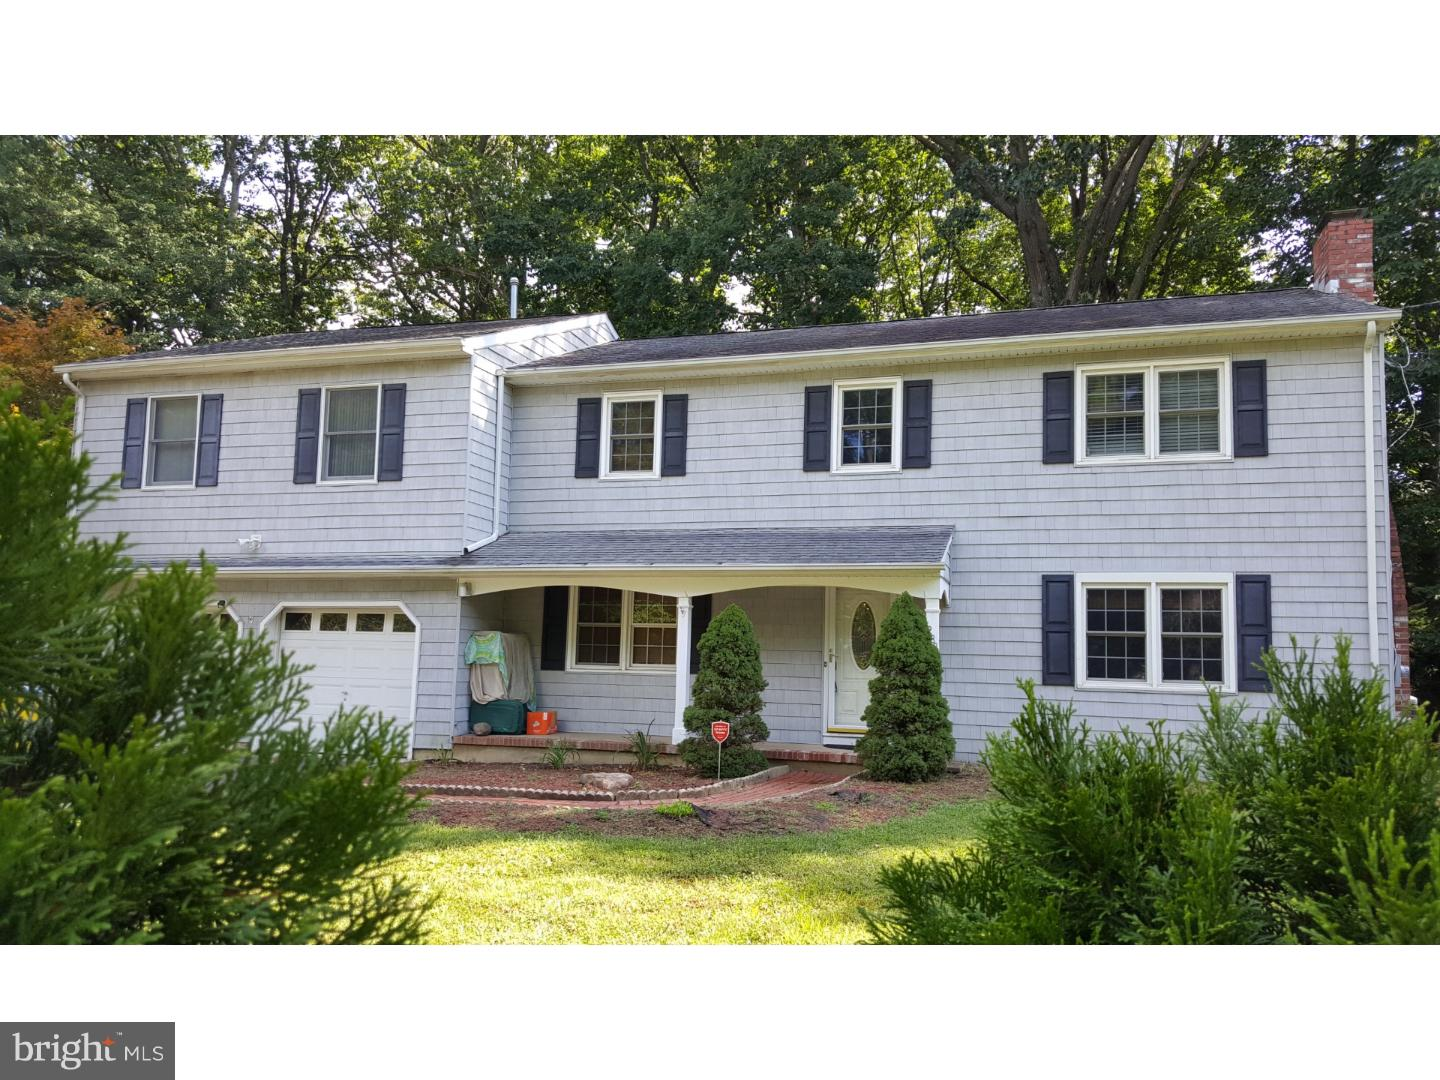 Single Family Home for Sale at 288 CLARKSVILLE Road West Windsor, New Jersey 08550 United StatesMunicipality: West Windsor Twp, West Windsor Twp